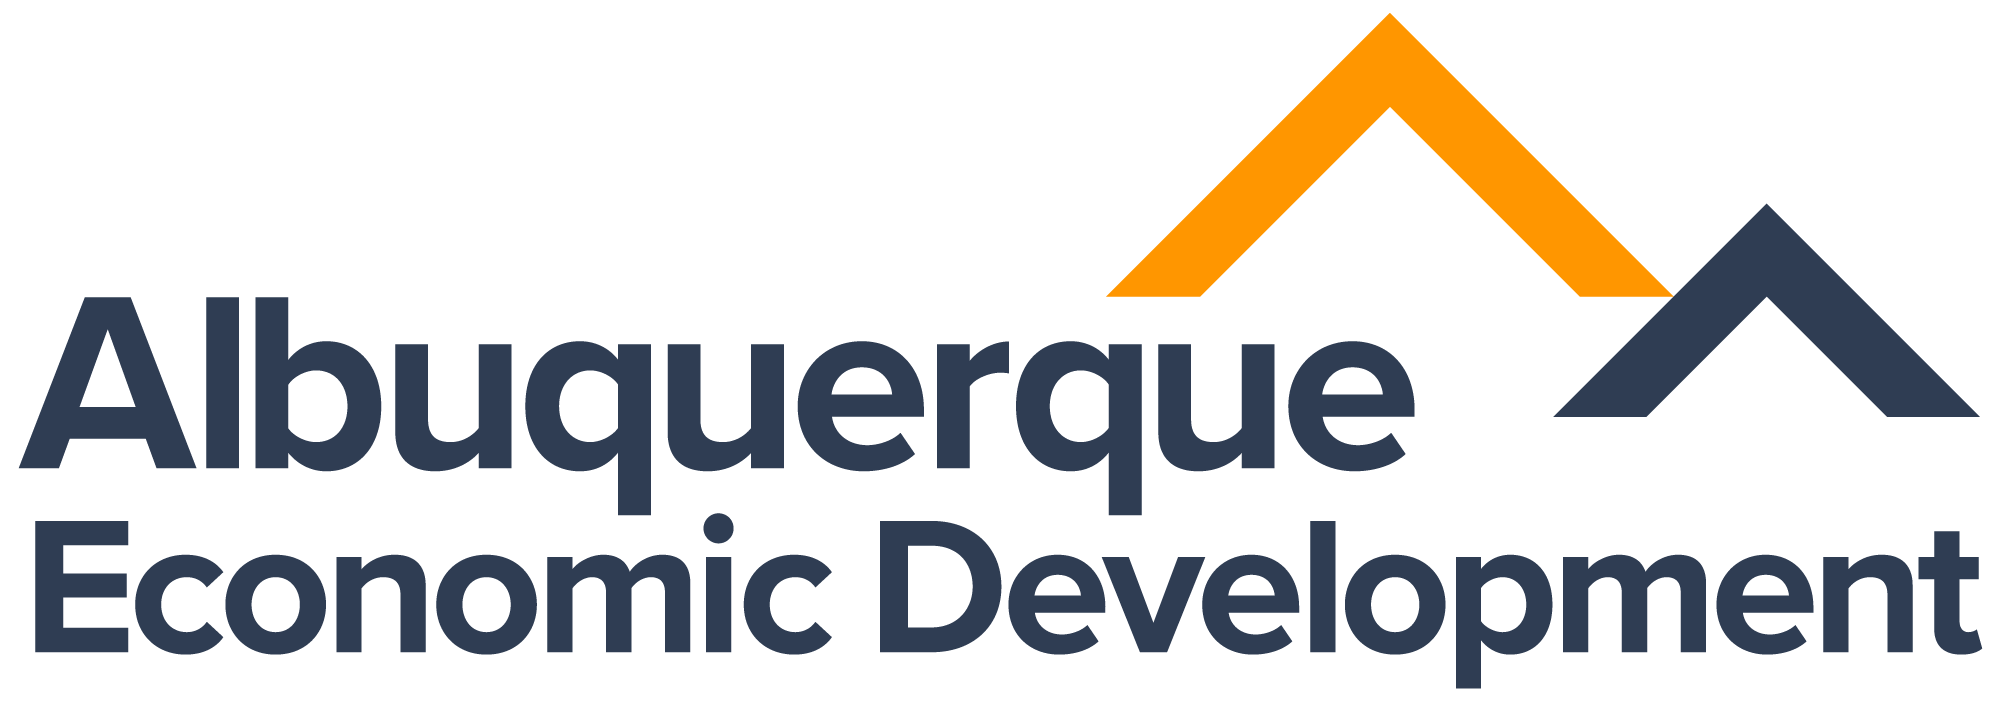 albuquerque economic development logo